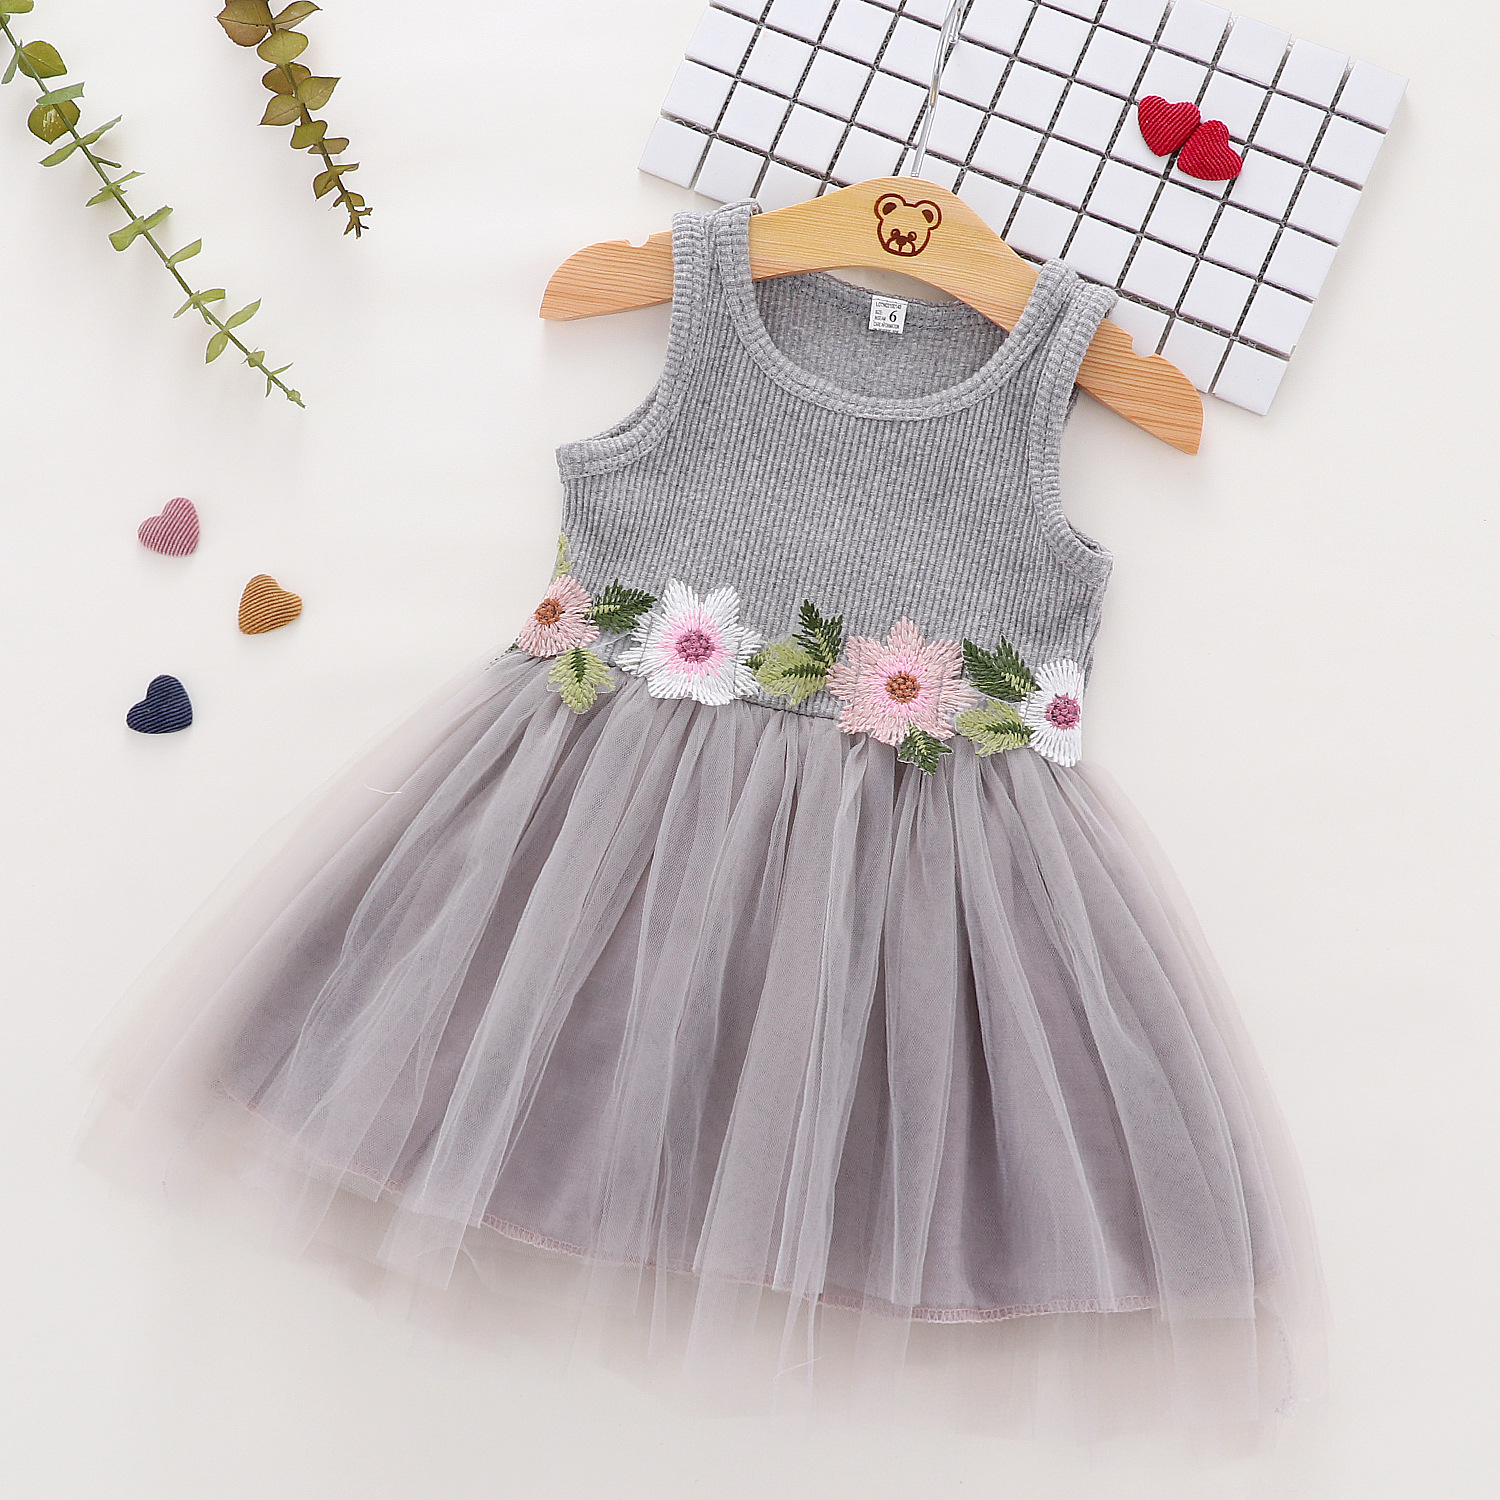 Baby/ Toddler Girl's Flower Embroidered Knitted Tulle Dress